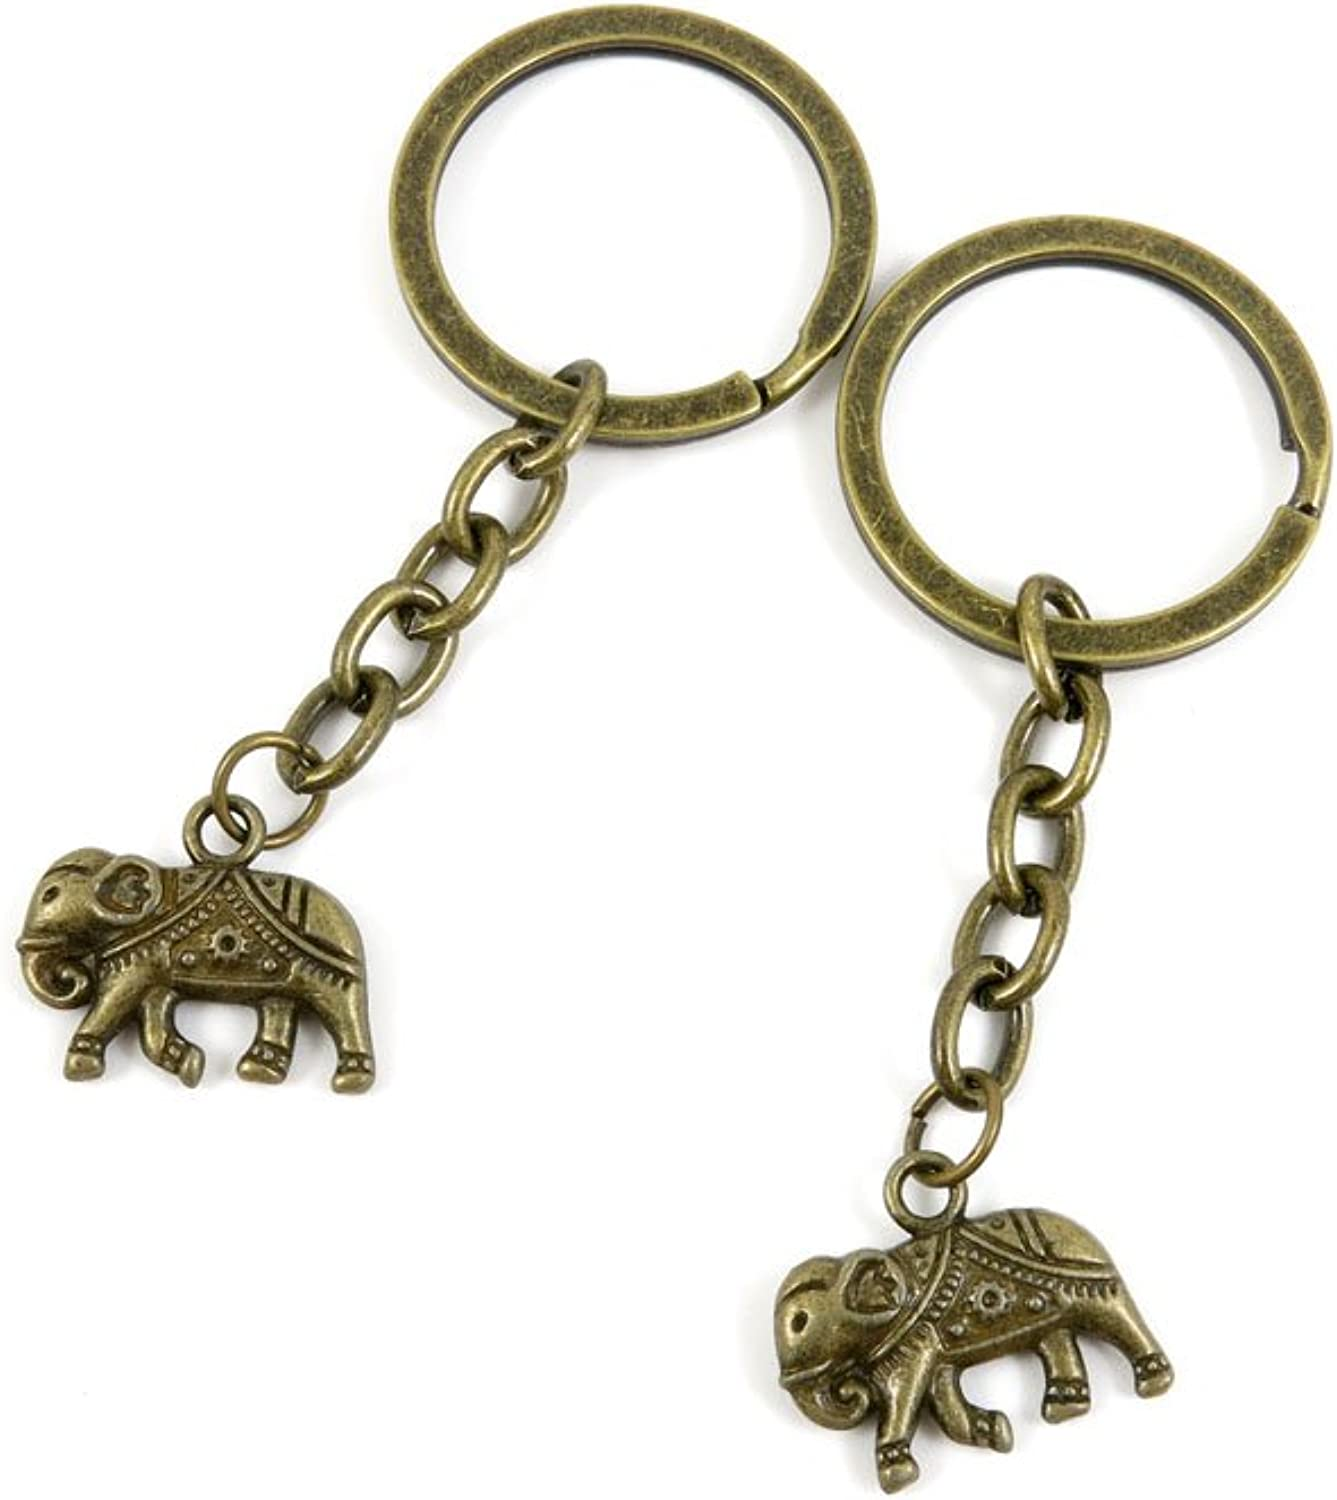 170 Pieces Fashion Jewelry Keyring Keychain Door Car Key Tag Ring Chain Supplier Supply Wholesale Bulk Lots A1KY2 Thai Elephant